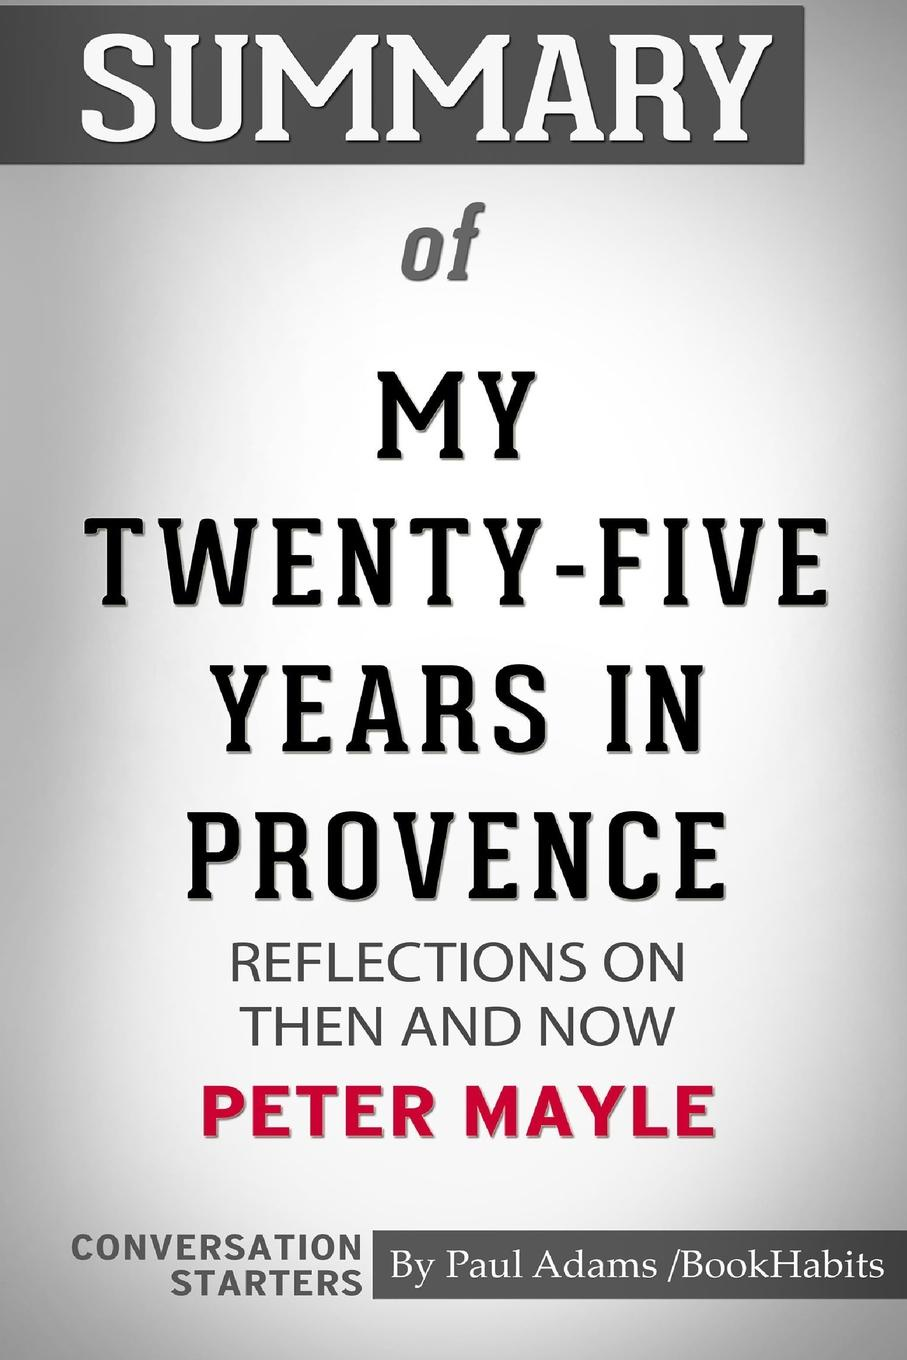 лучшая цена Paul Adams / BookHabits Summary of My Twenty-Five Years in Provence. Reflections on Then and Now by Peter Mayle: Conversation Starters